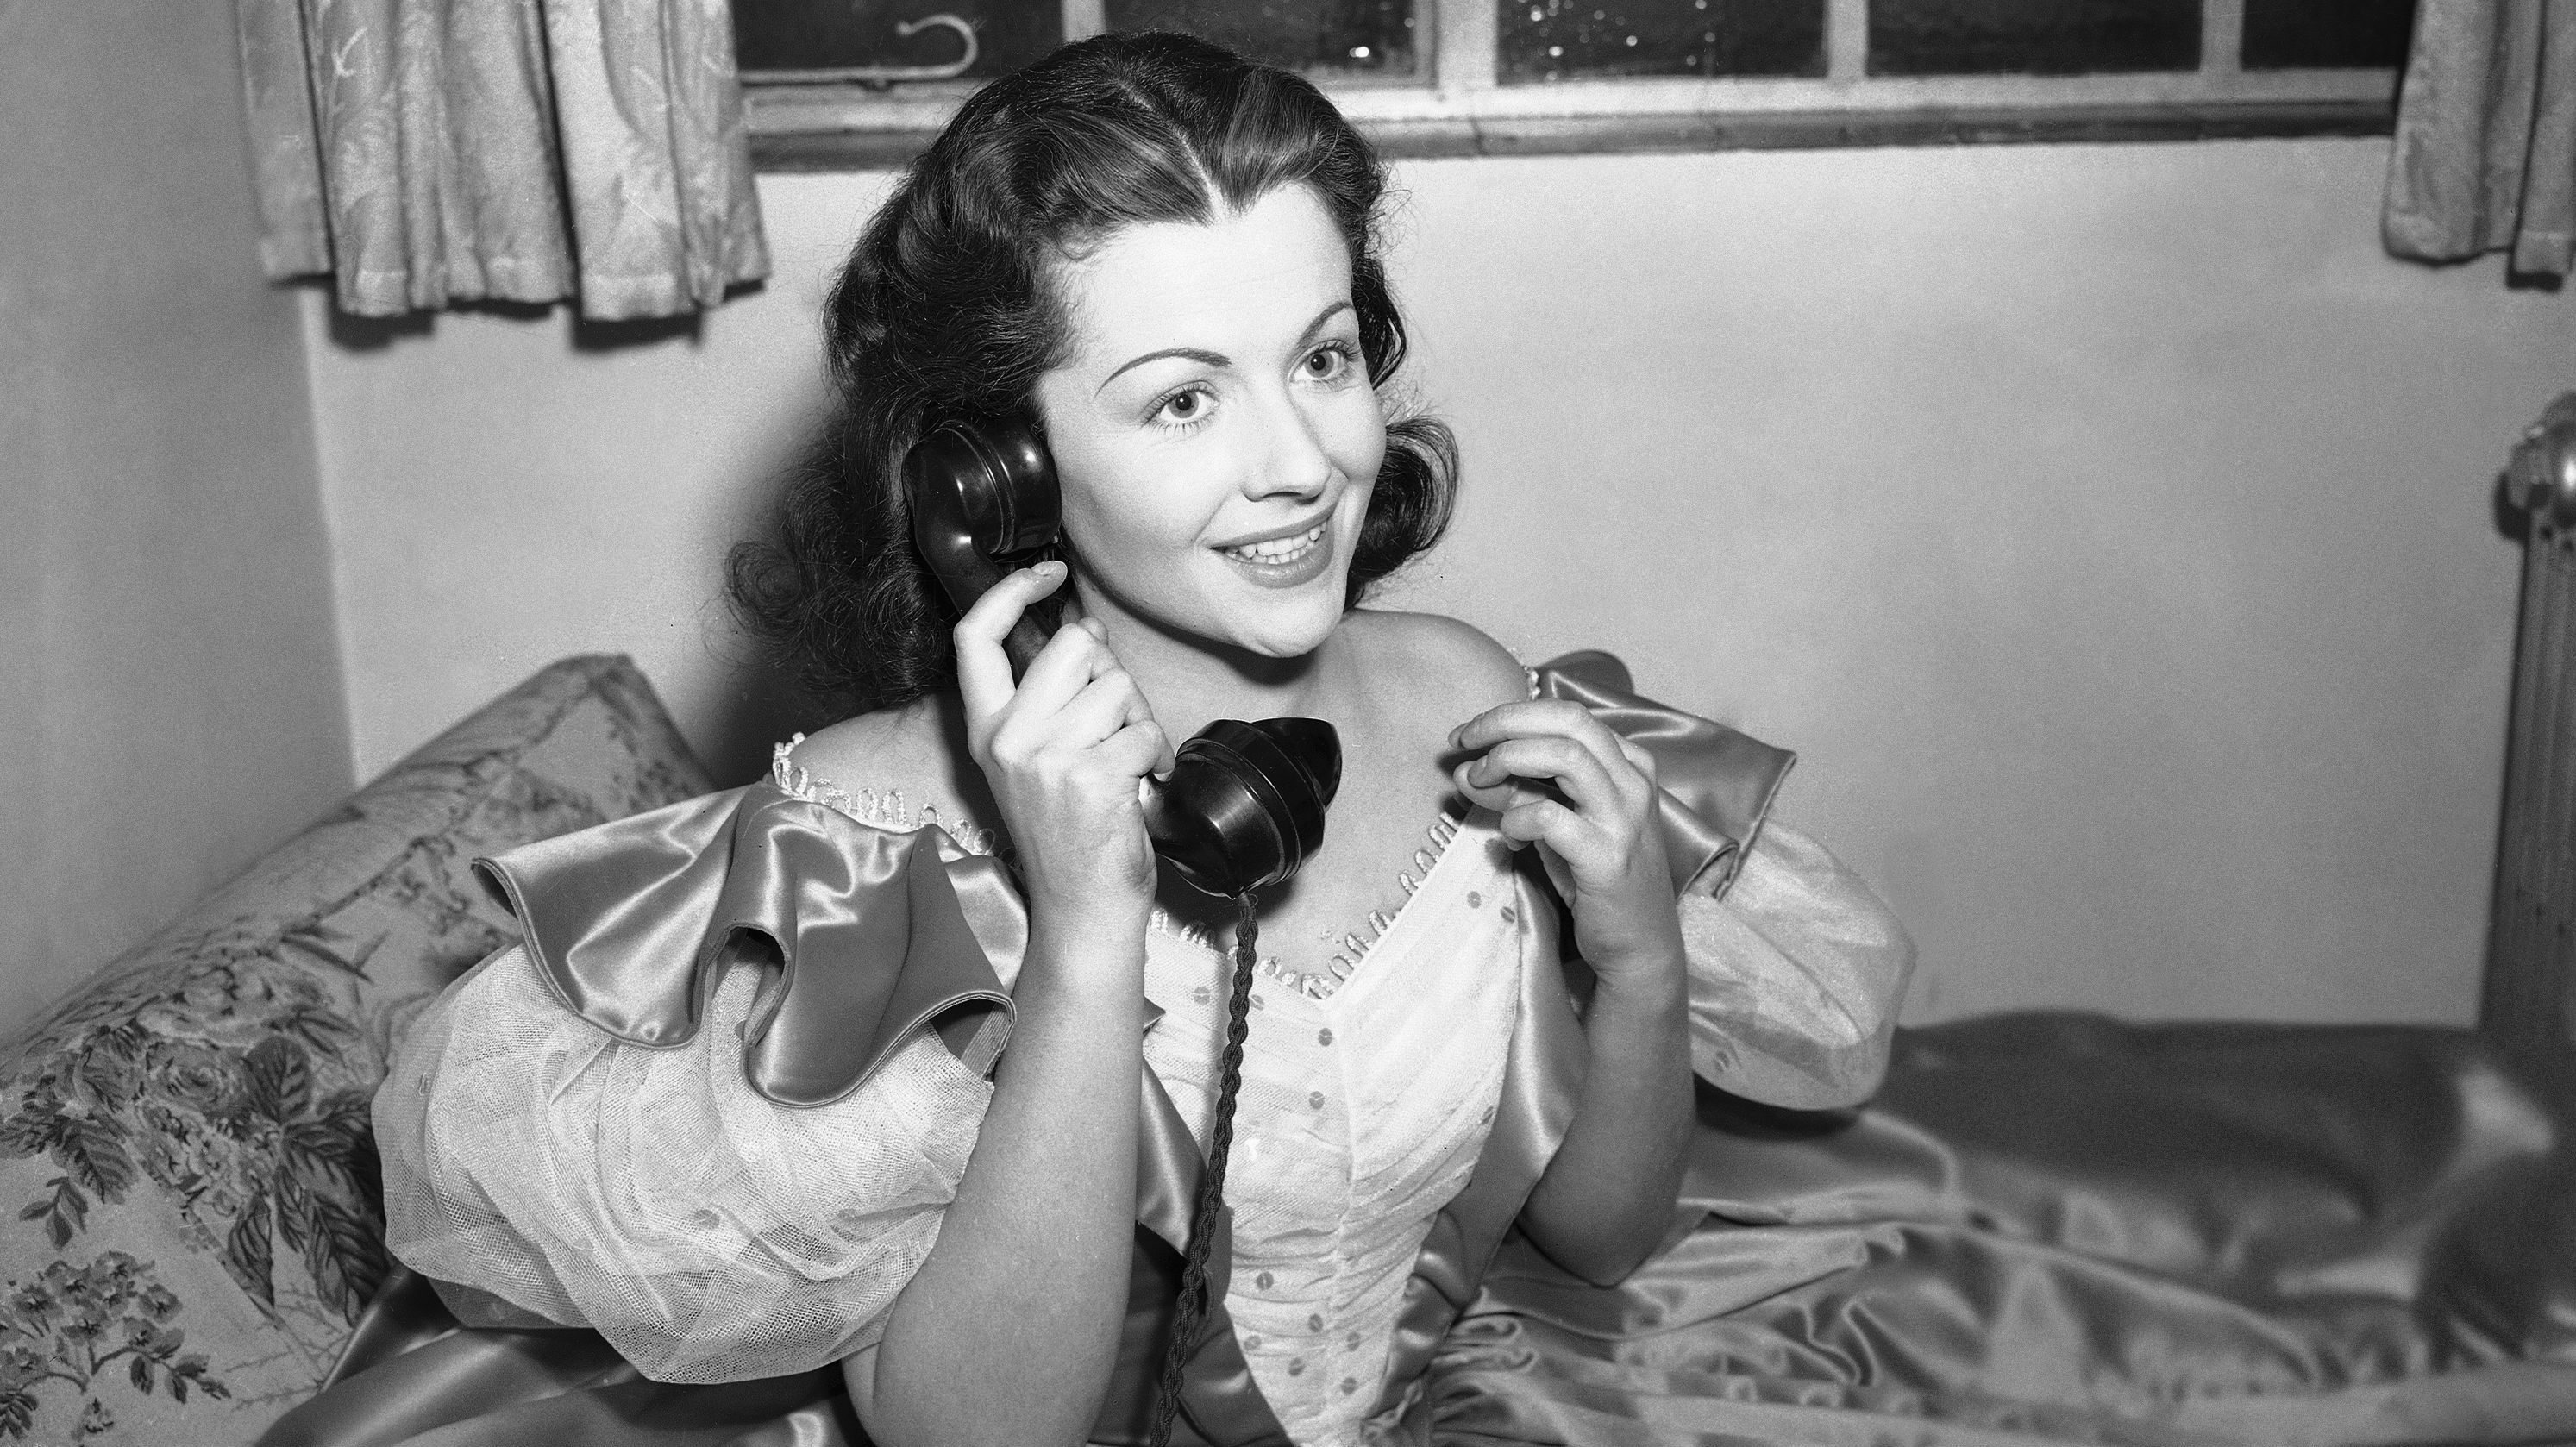 """Margaret Lockwood, star of the film """"The Wicked Lady"""" during a series of trans-Atlantic telephone interviews with American newspapers on Dec. 4, 1946. The film is about to have its first showing in the USA. In her first interview on December 4, Miss Lockwood answering the question on what she thought about American censorship, to which she replied that Queen Mary saw the picture in London and was delighted with it, adding, that if it didn't shock Queen Mary, I don't see why it should have shocked Joseph Breen, the censor. (AP Photo)"""